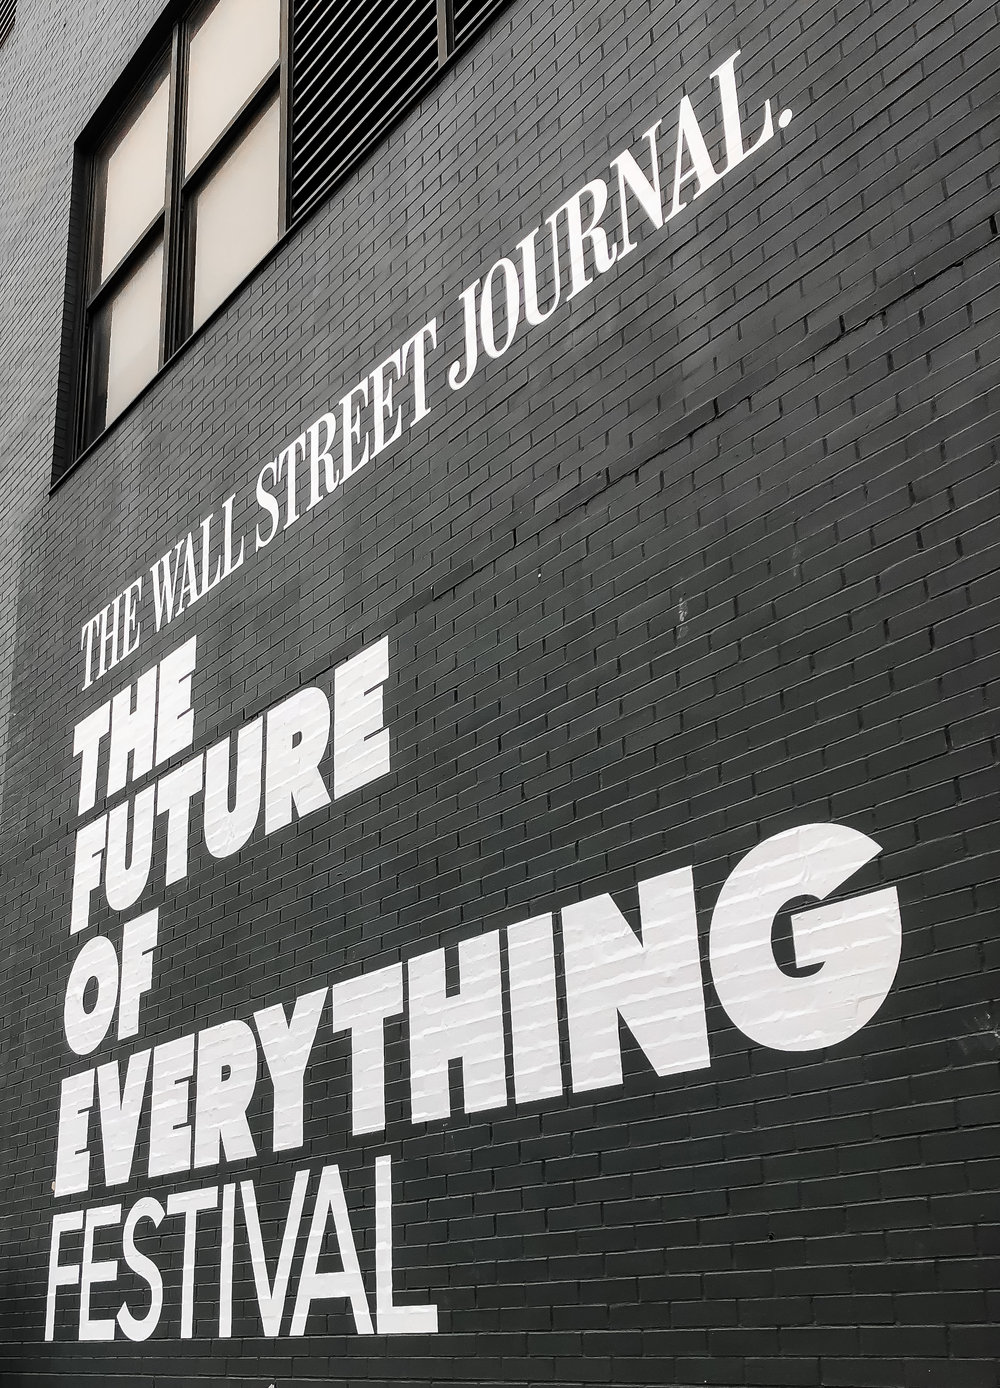 The Wall Street Journal: The Future of Everything Festival